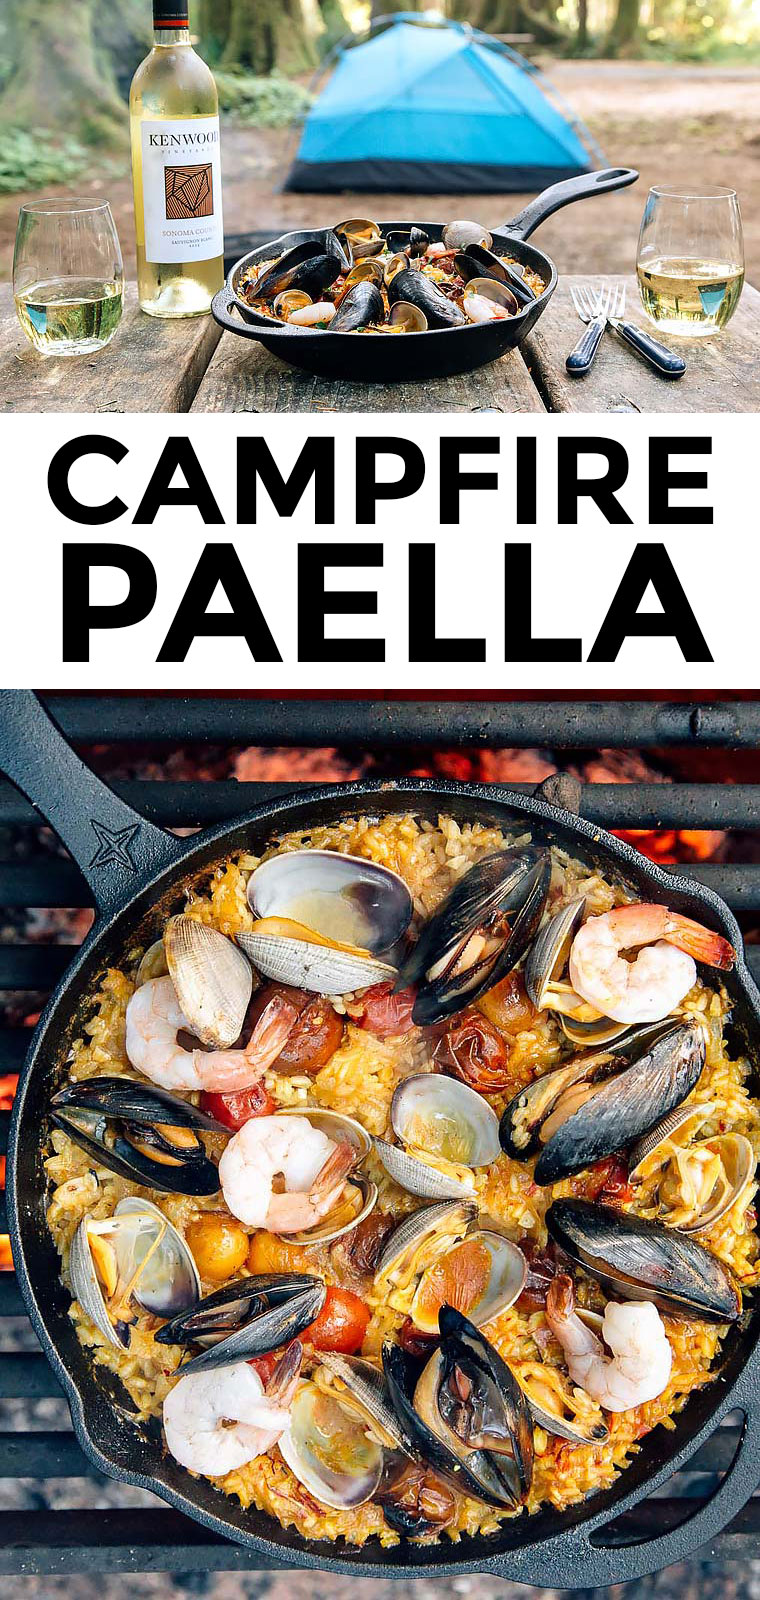 This campfire paella cooked in a cast iron skillet is camping food at it's best! via @freshoffthegrid